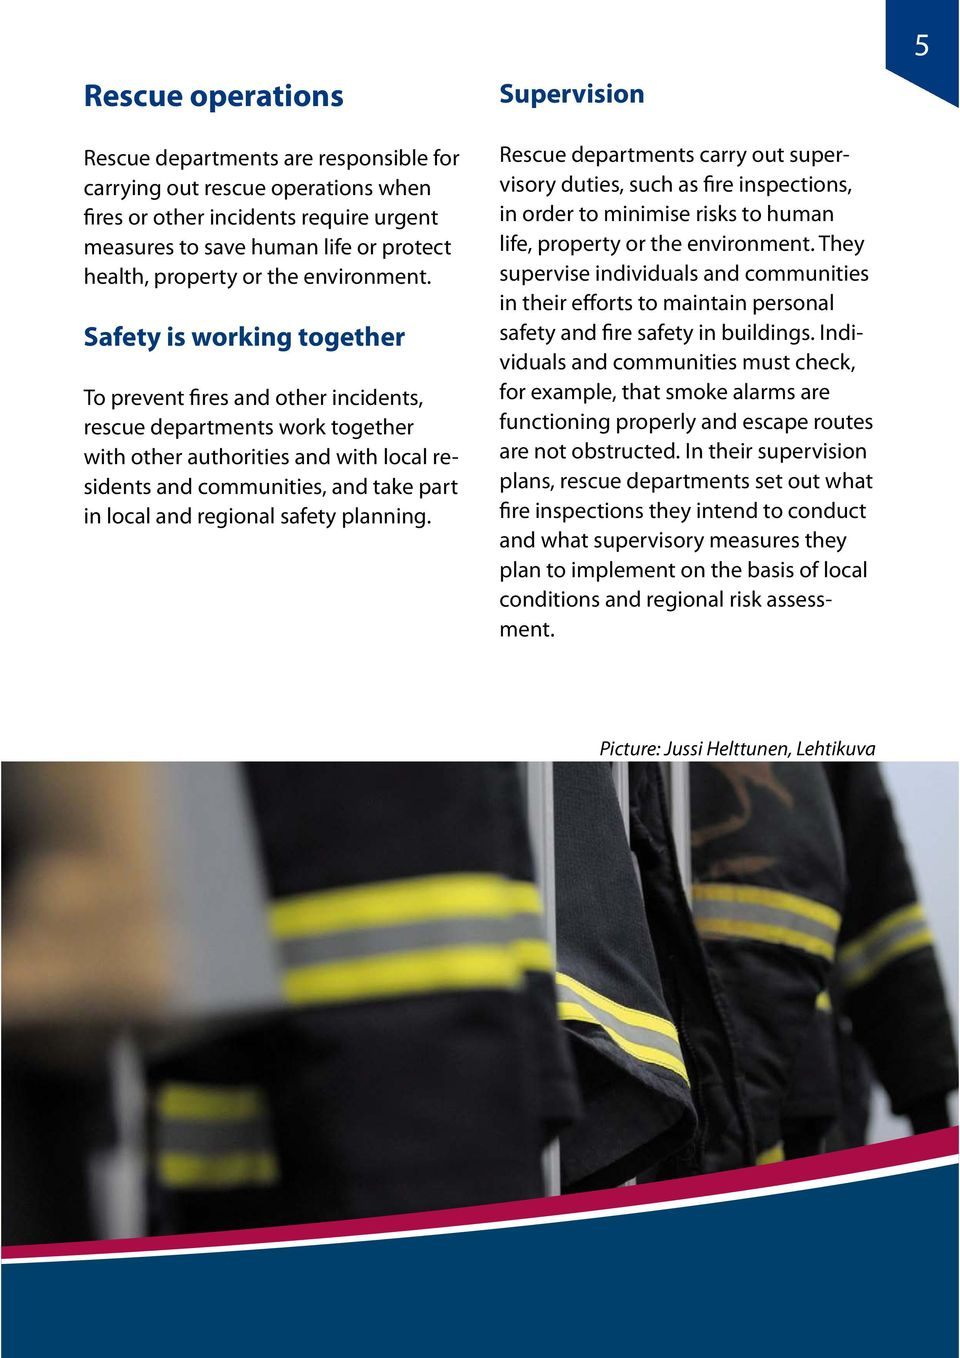 Safety is working together To prevent fires and other incidents, rescue departments work together with other authorities and with local residents and communities, and take part in local and regional